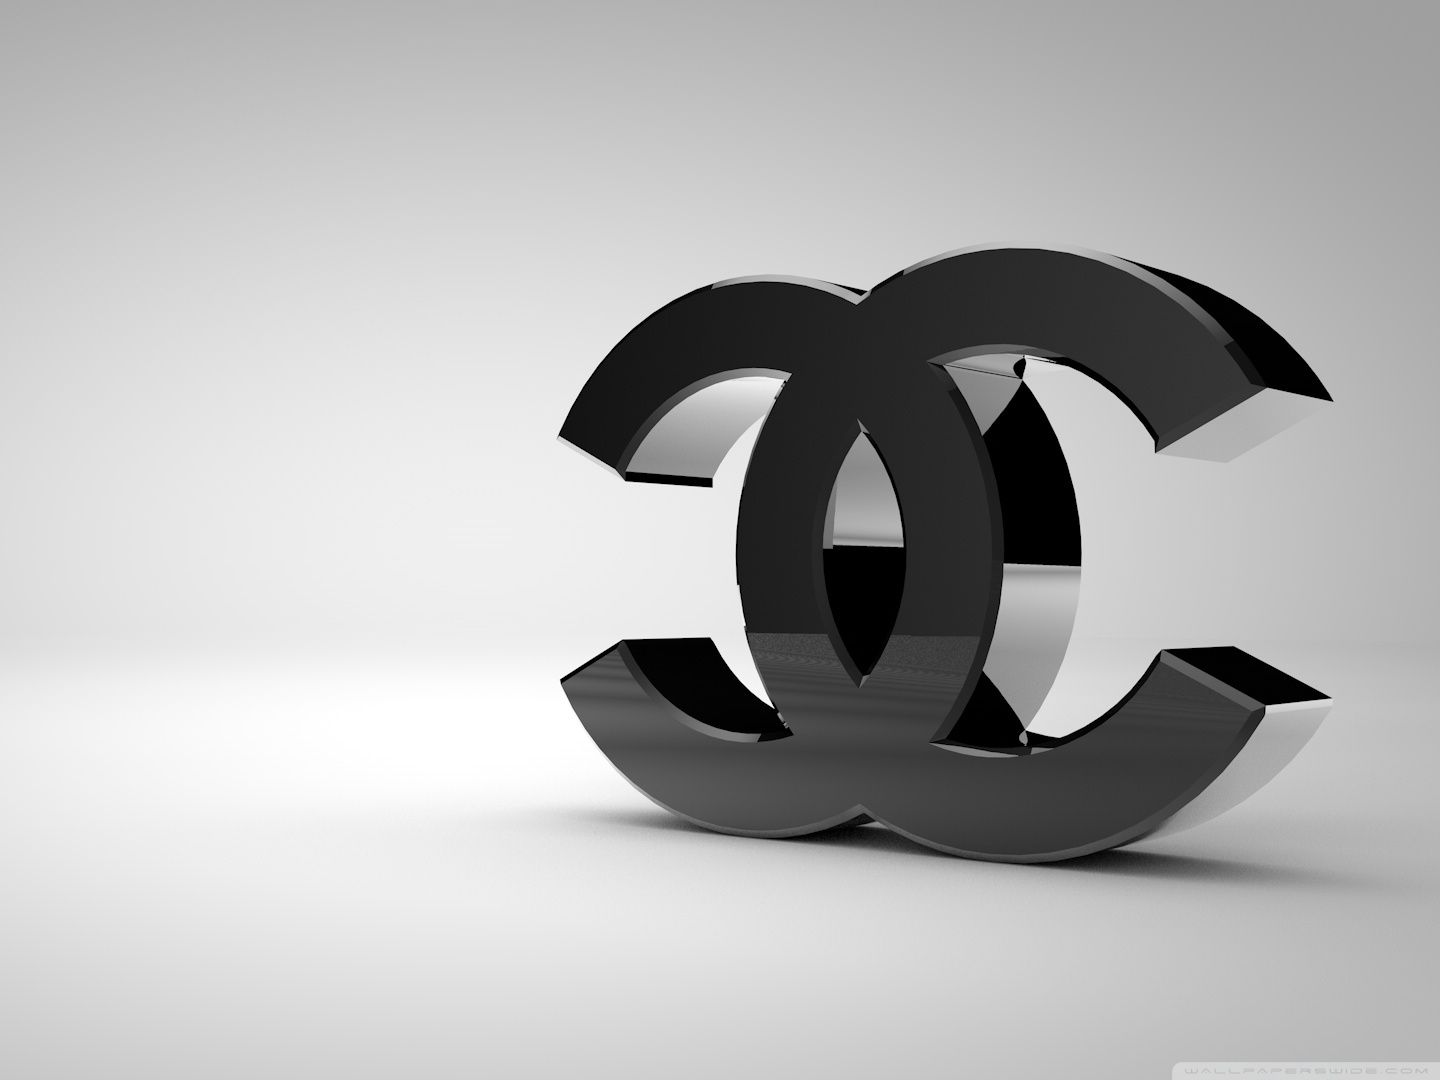 Chanel Wallpaper Chanel Image Galleries Wallpapers HD Wallpapers